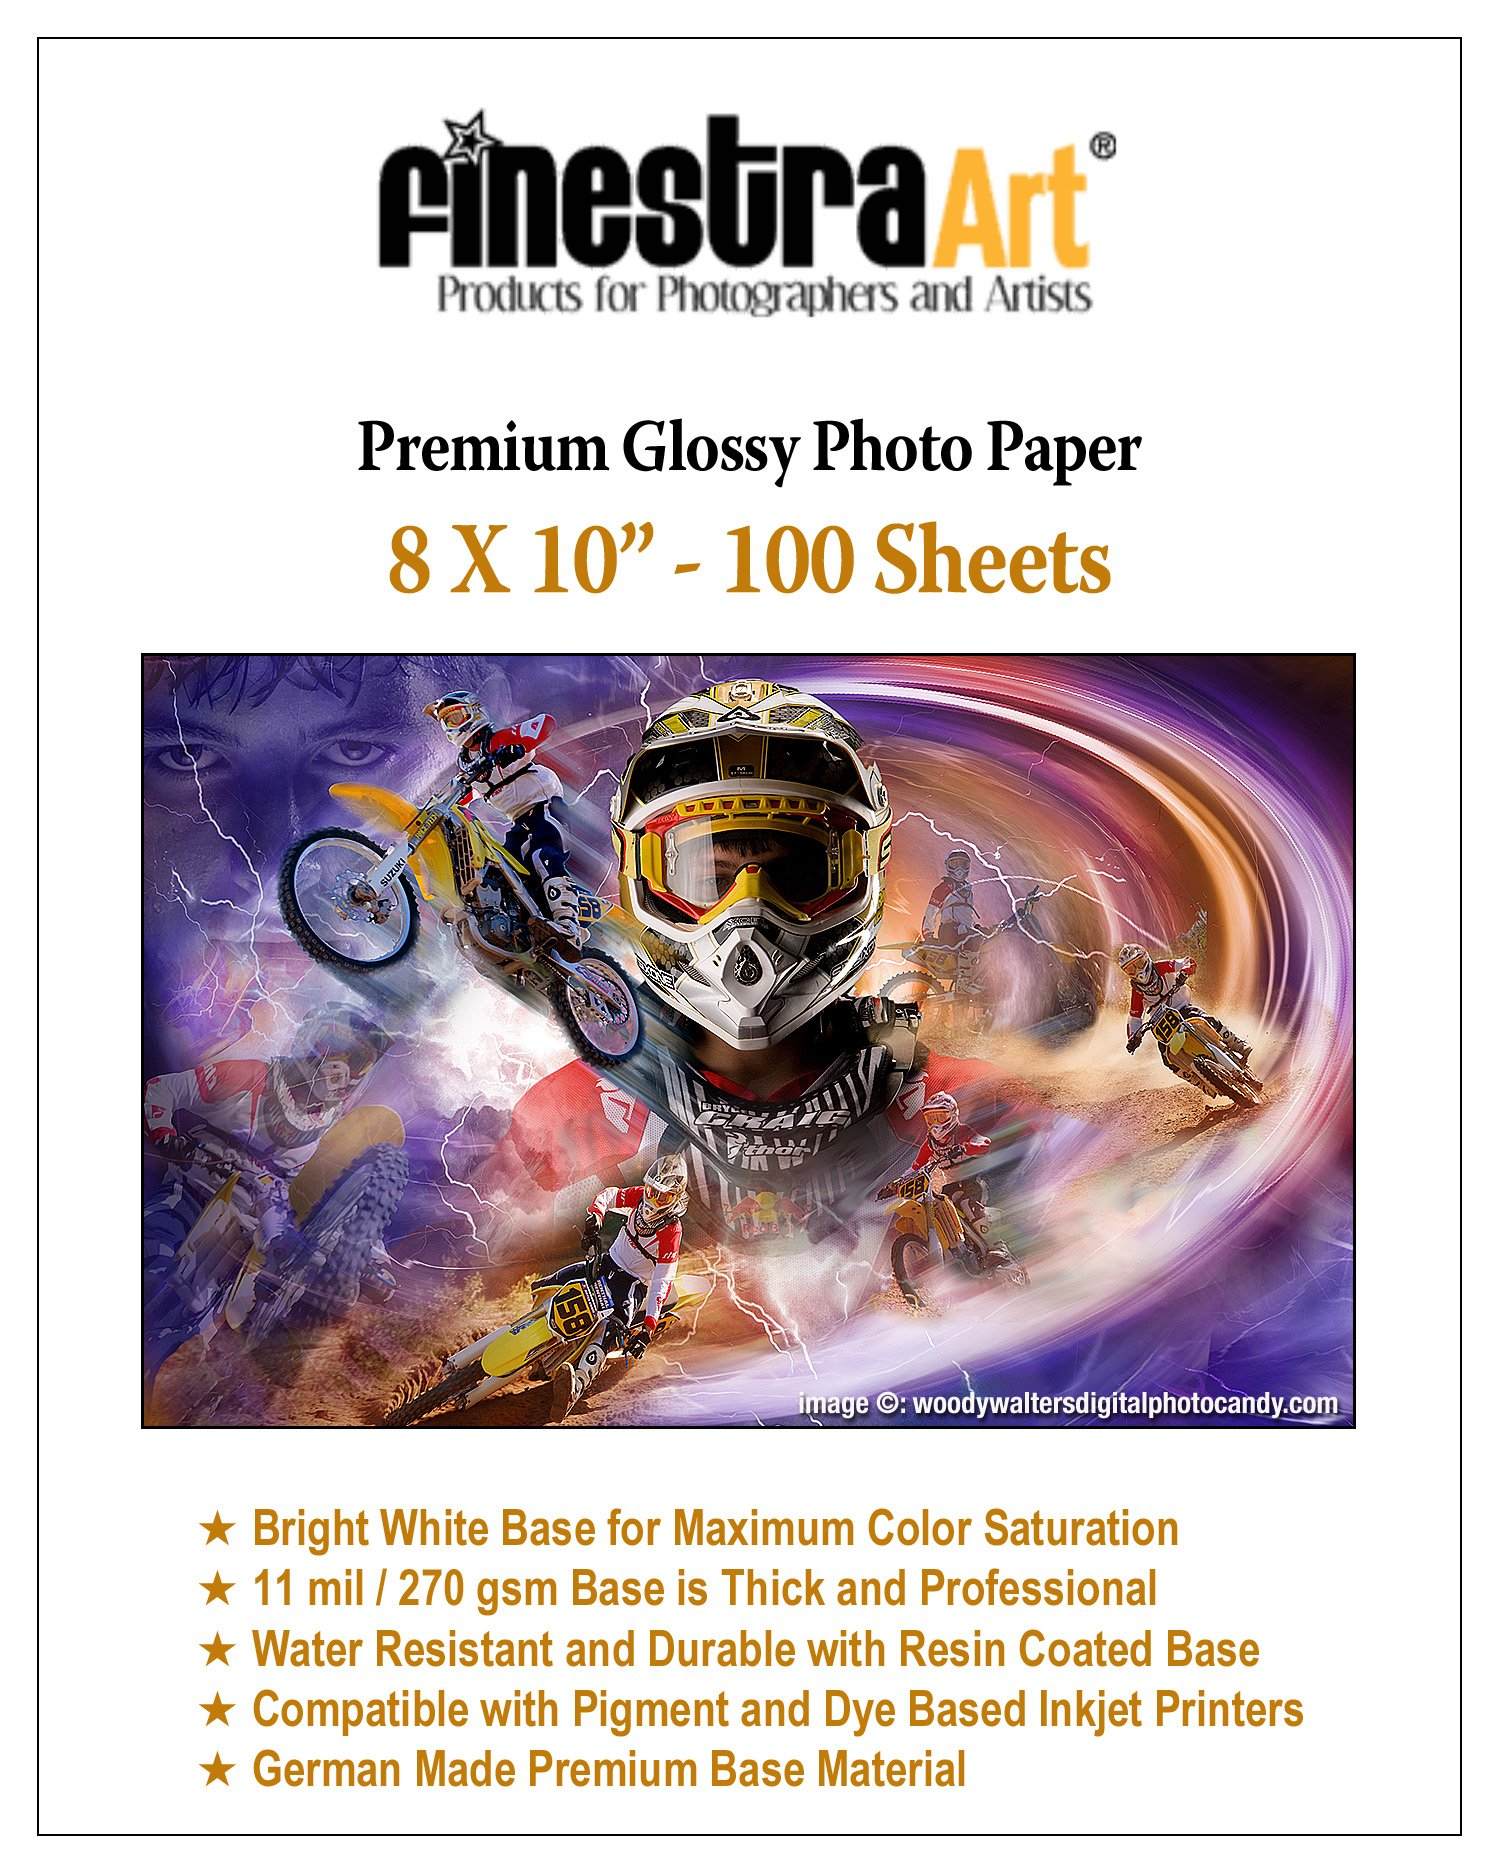 Finestra Art 100-Sheets Glossy Photo Paper, 8-Inch x 10-Inch, 11 mil / 270 gsm